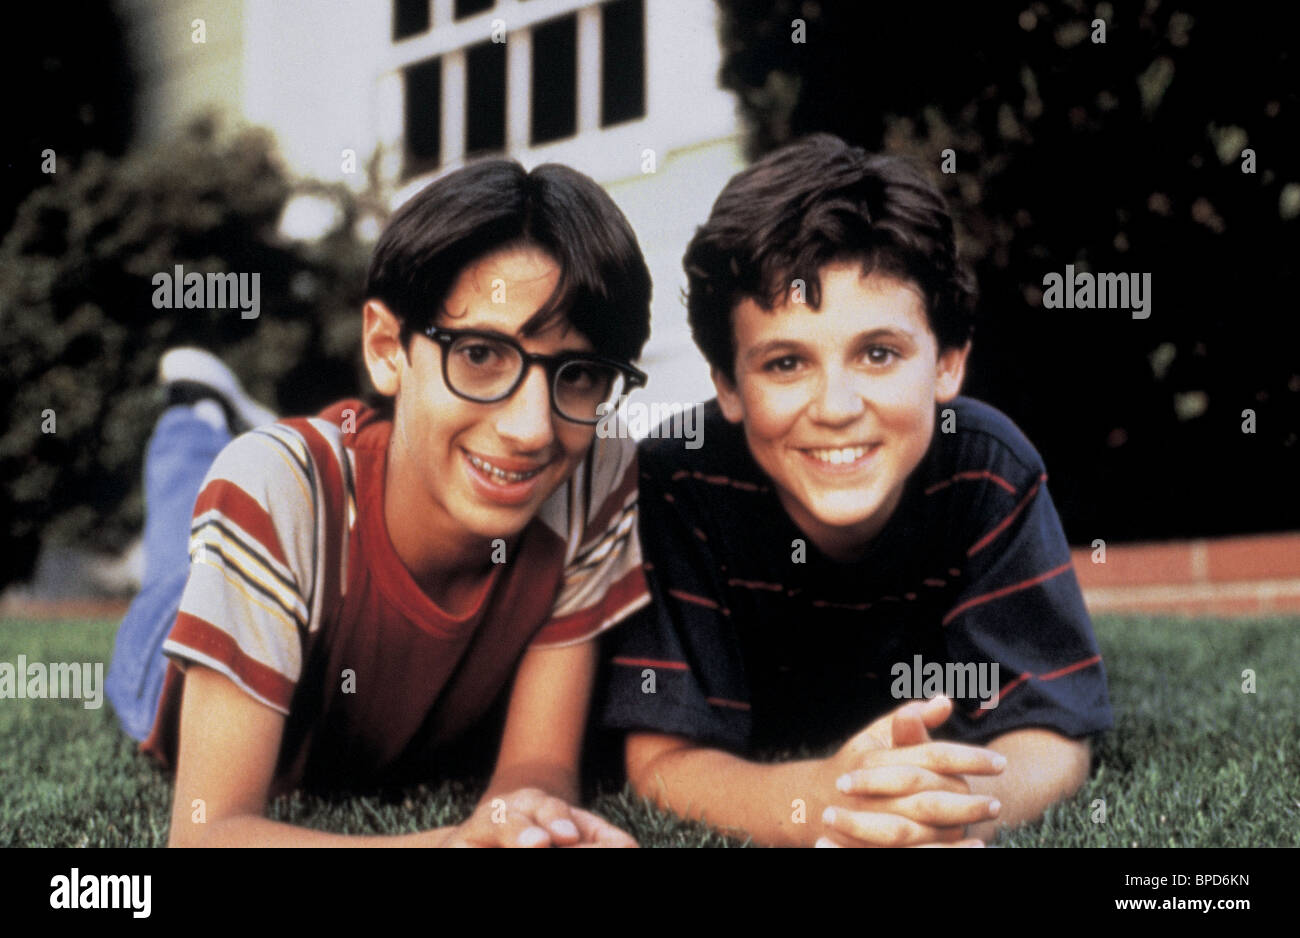 JOSH SAVIANO & FRED SAVAGE THE WONDER YEARS (1988) Stock Photo